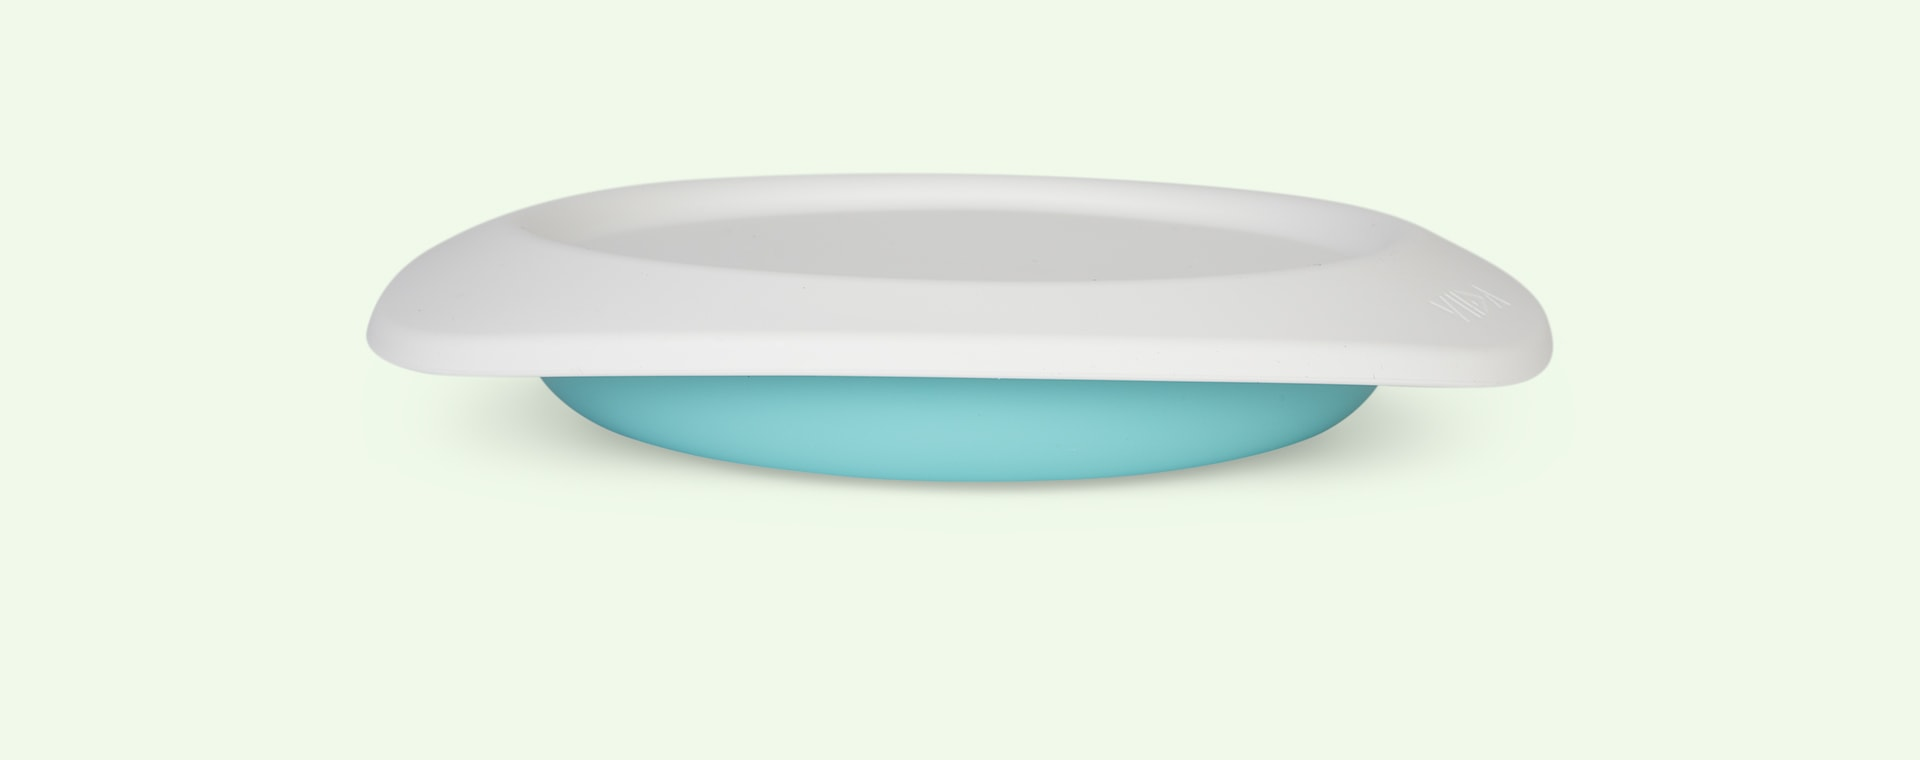 Turquoise Green VIIDA Soufflé Antibacterial Stainless Steel Plate